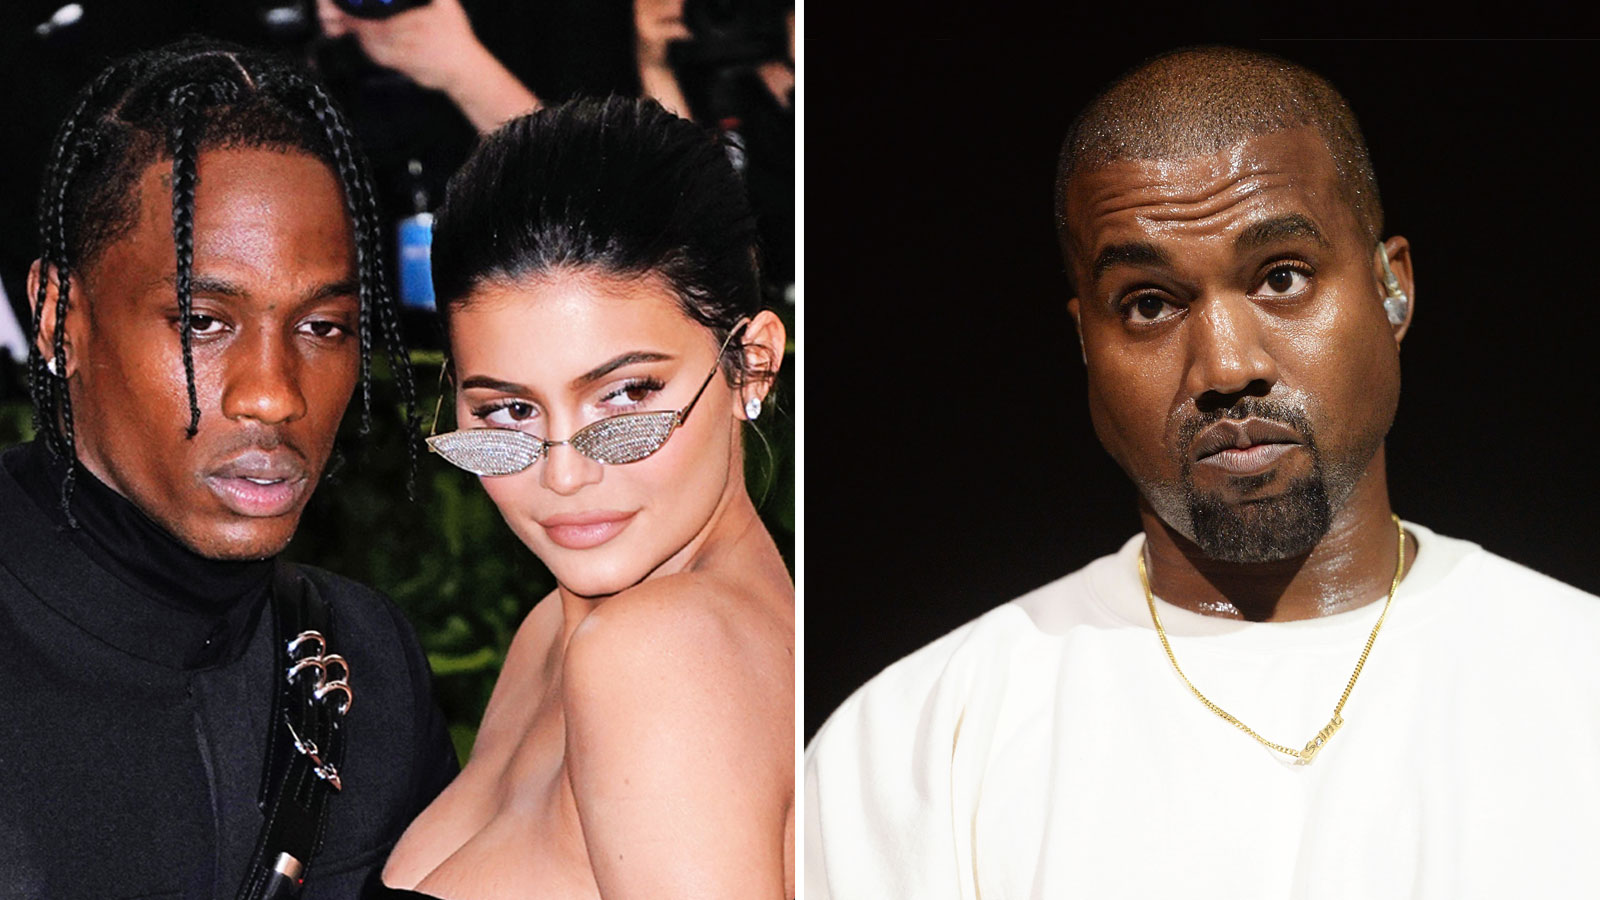 c0a58a3b5e52 Kylie Jenner Defends Travis Scott After Fans Call Him 'Petty' Amid Kanye  West Feud Rumors